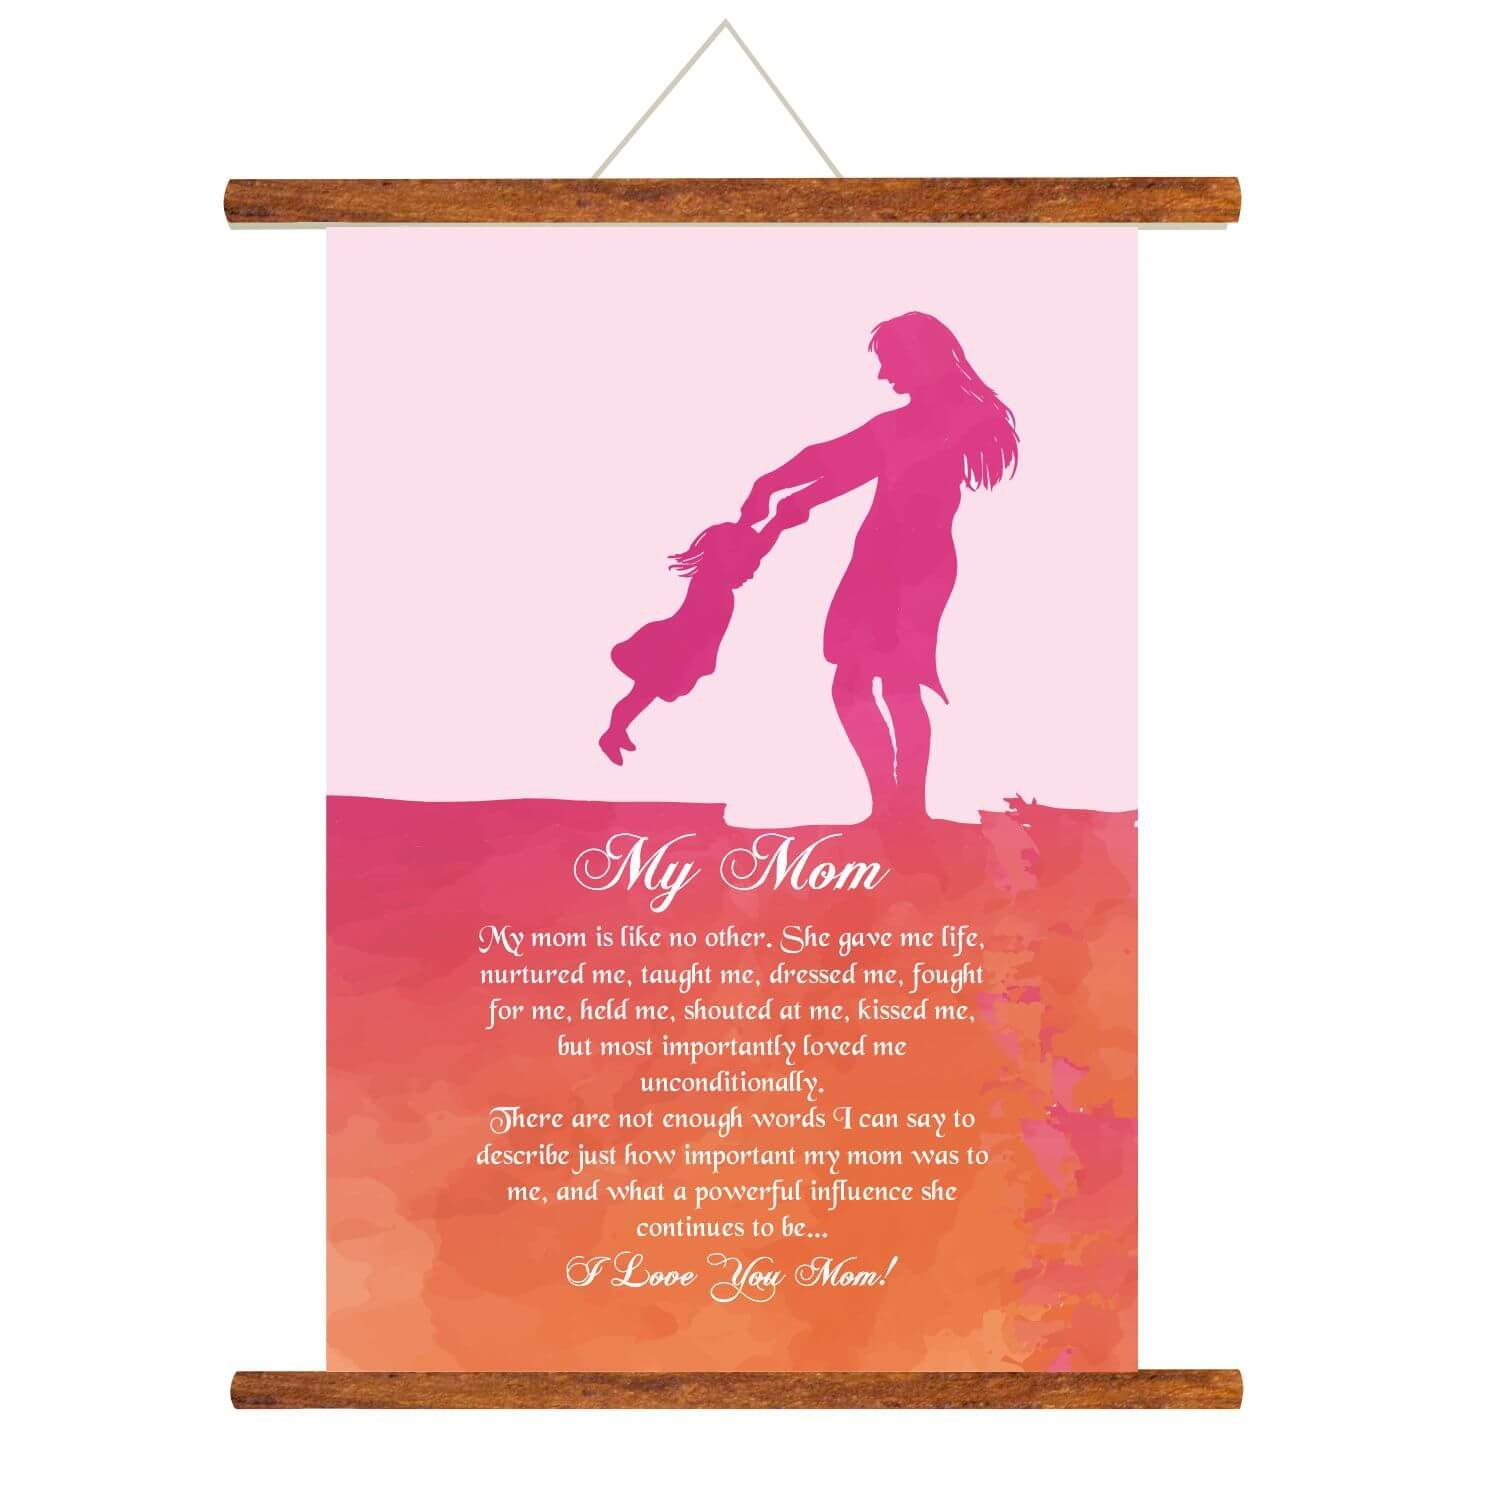 YaYa Cafe Mothers Day Gifts From Daughter Greeting Cards My Mom Scroll Card For Wall Hanging Decor